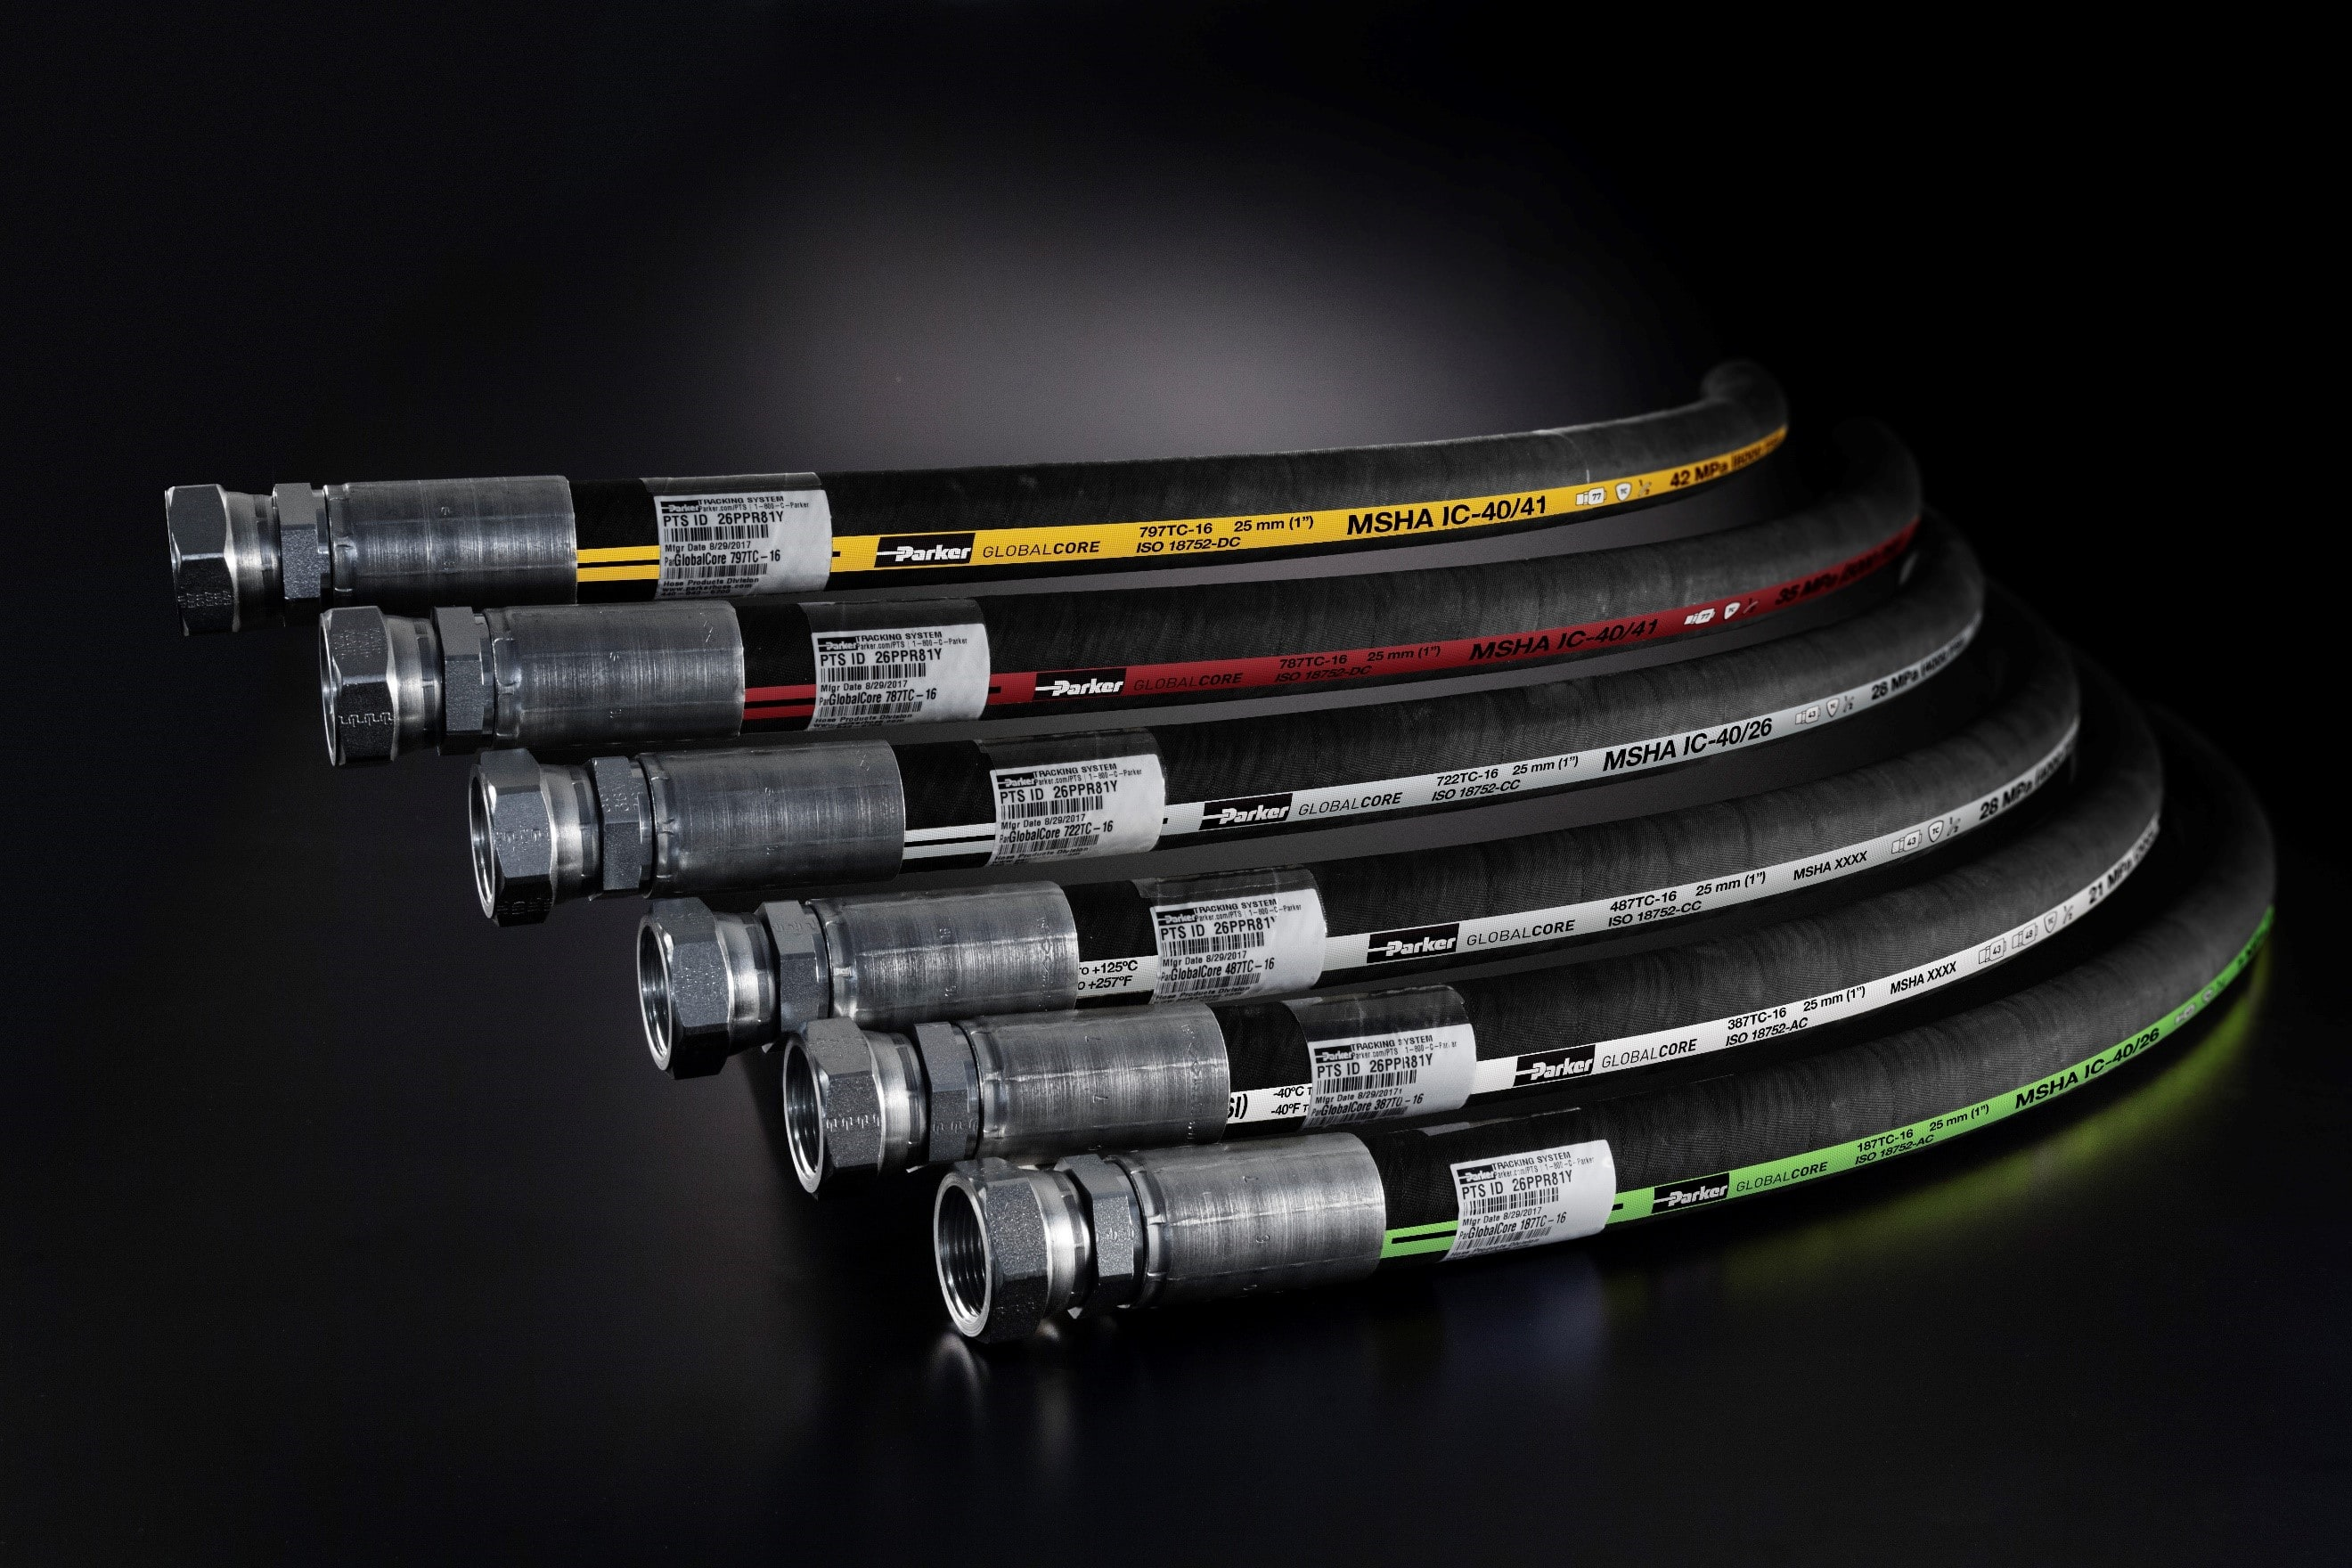 Parkers New GlobalCore 187 High Performance Hydraulic Hose